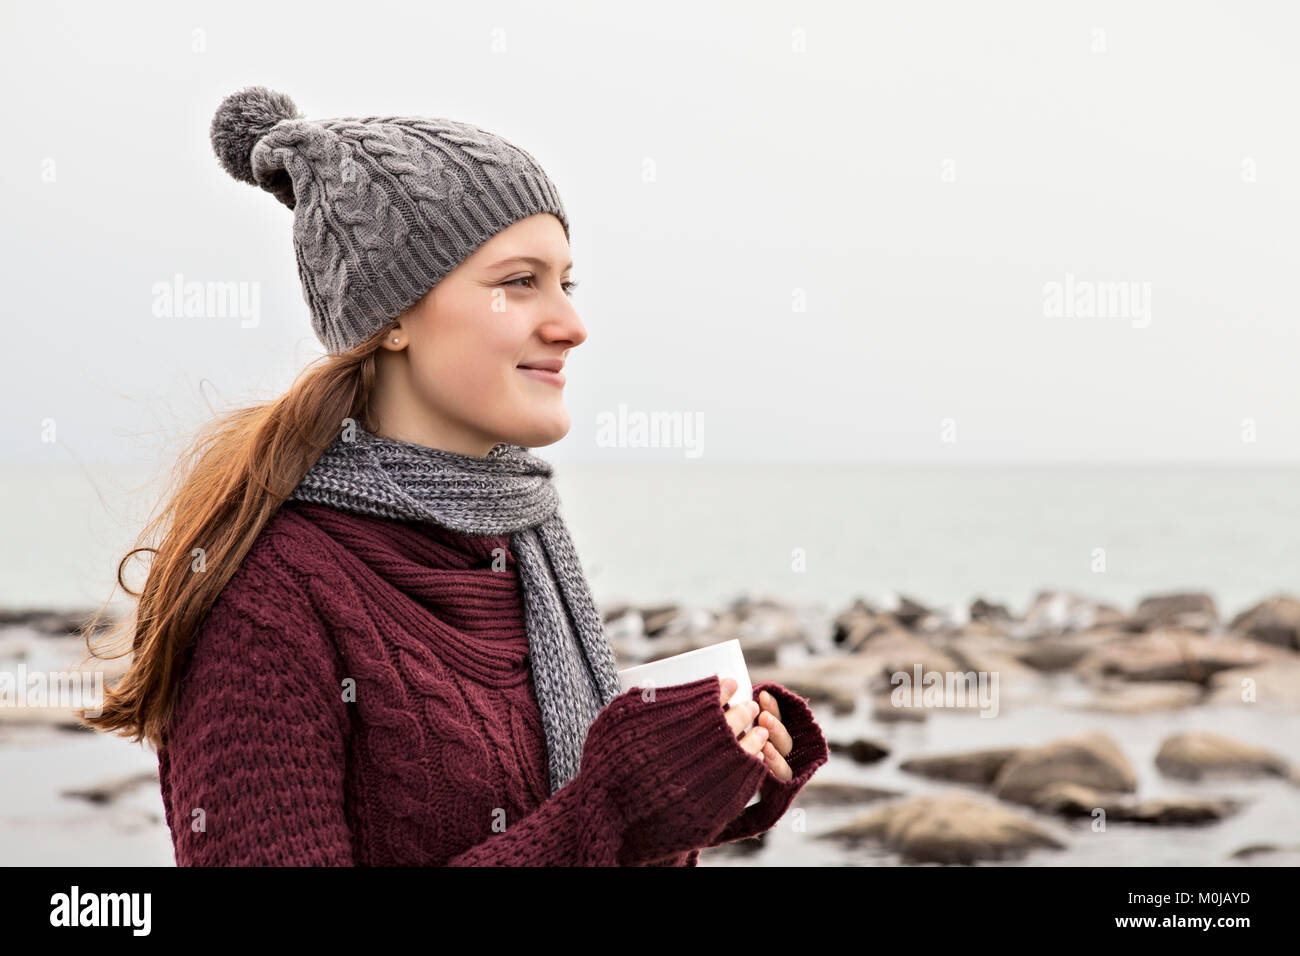 Girl standing on a beach in autumn holding a mug and wearing a knit hat and scarf, Woodbine Beach; Toronto, Ontario, - Stock Image